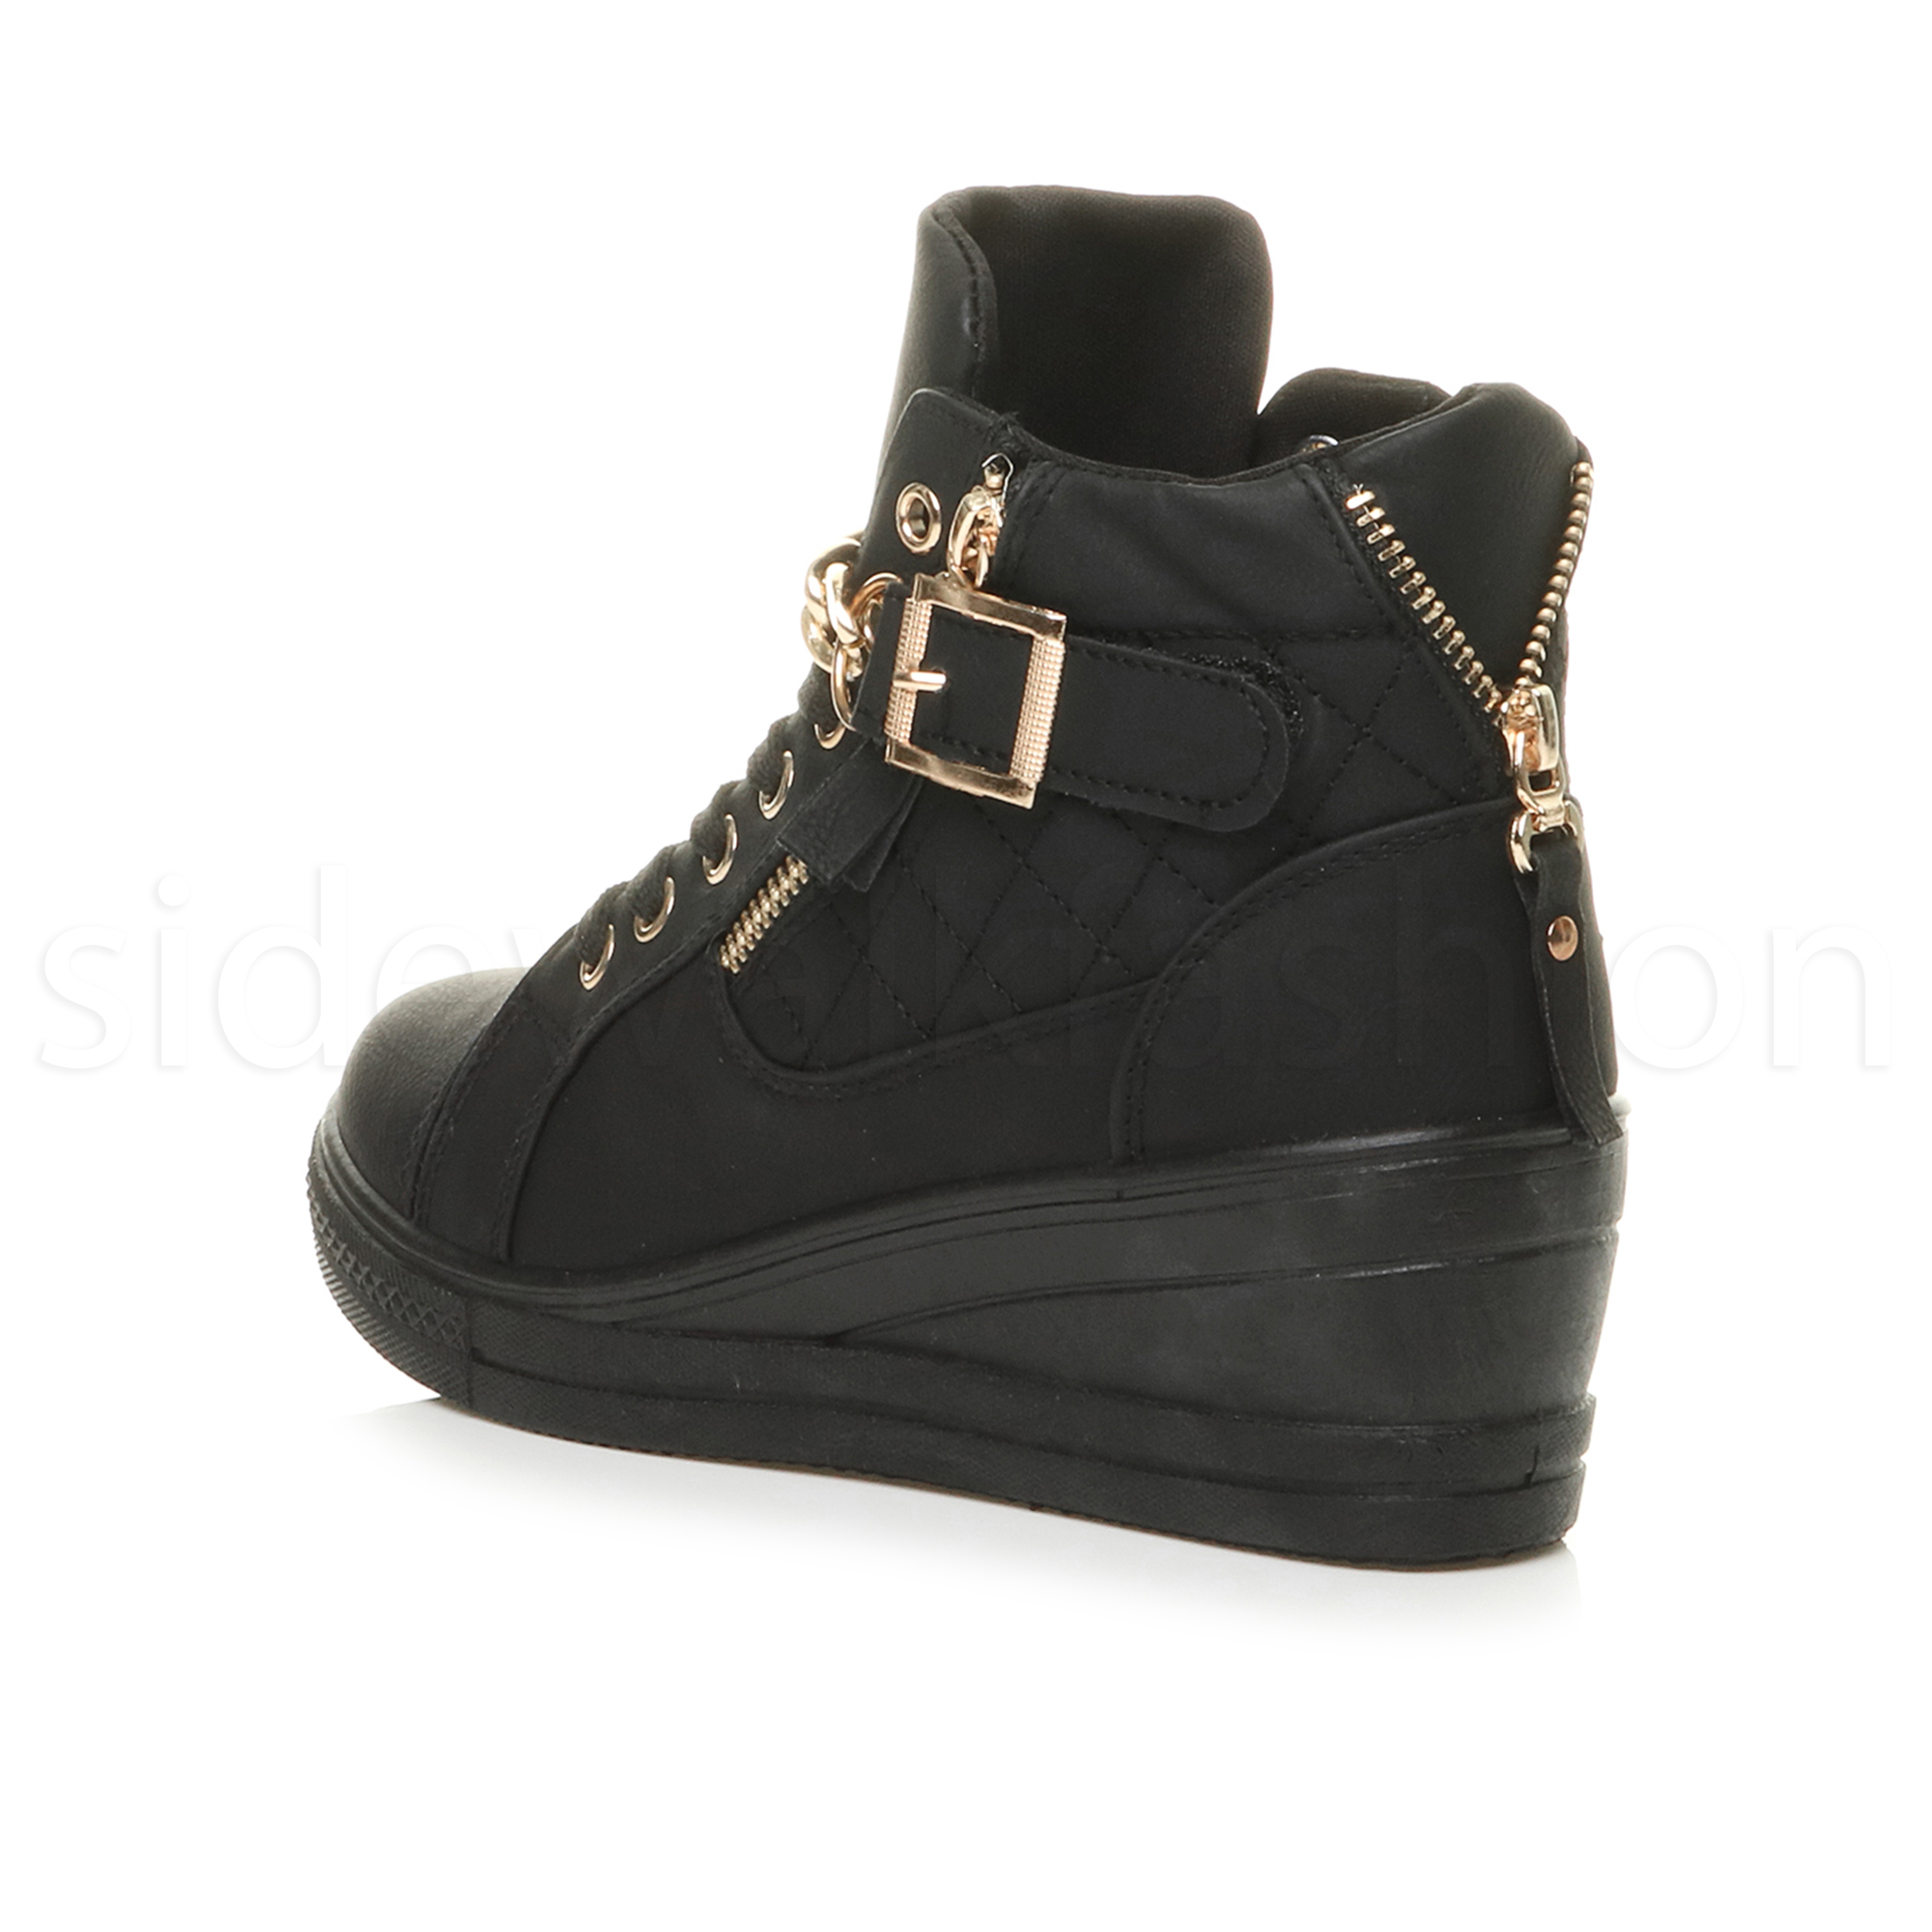 895a1e151a9 Womens ladies mid wedge heel gold chain platform hi-top trainers ...